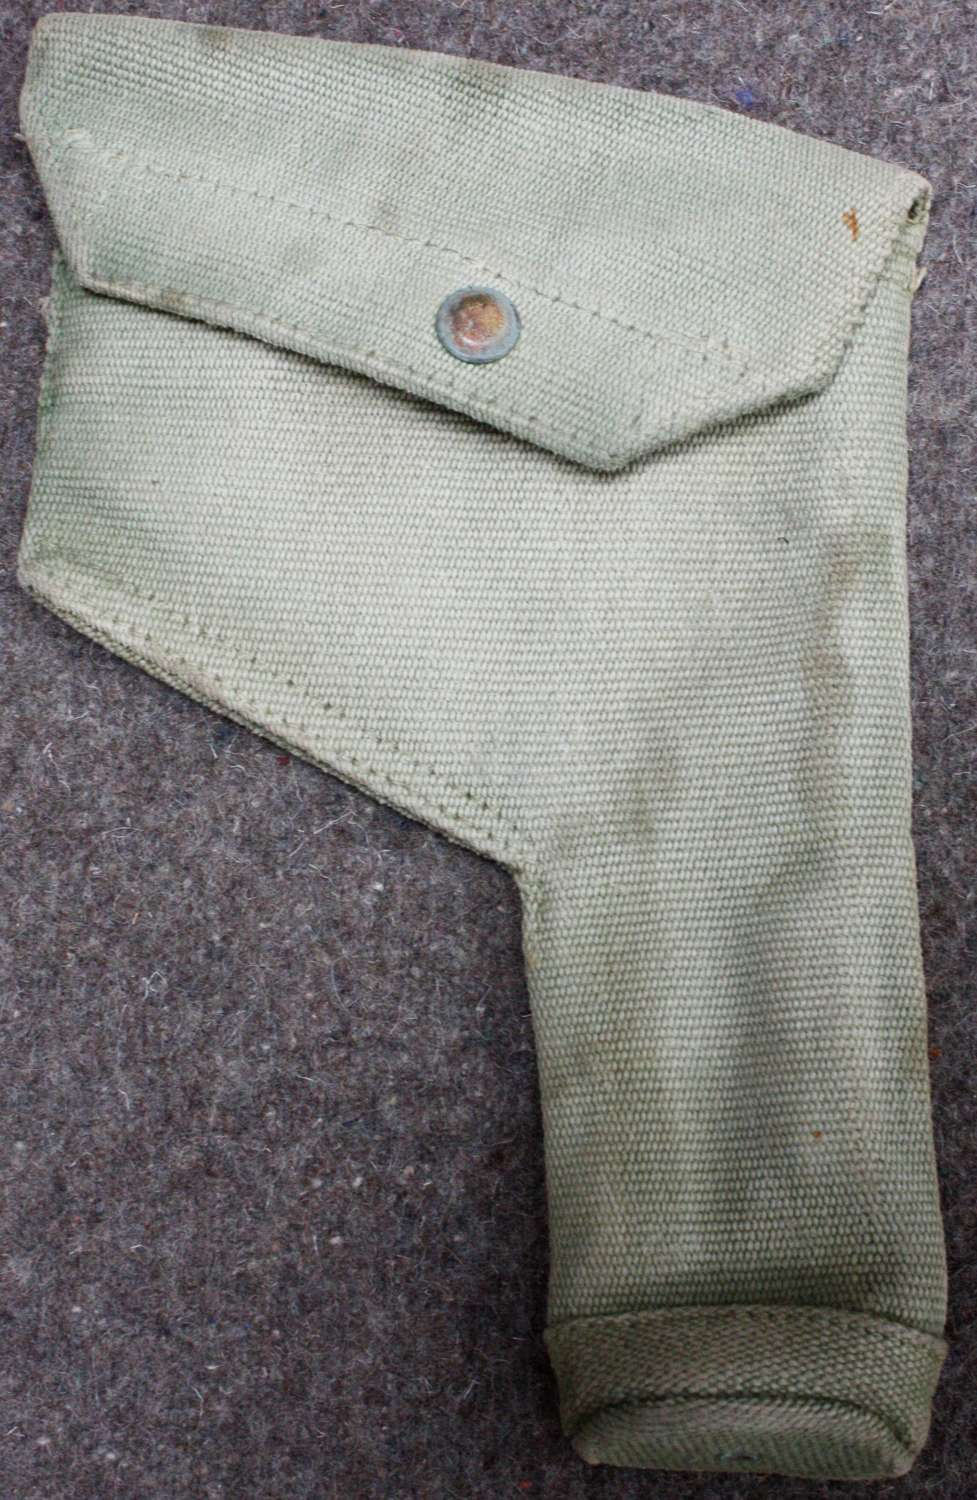 A WWII 37 PATTERN WEBBING USED HOLSTER